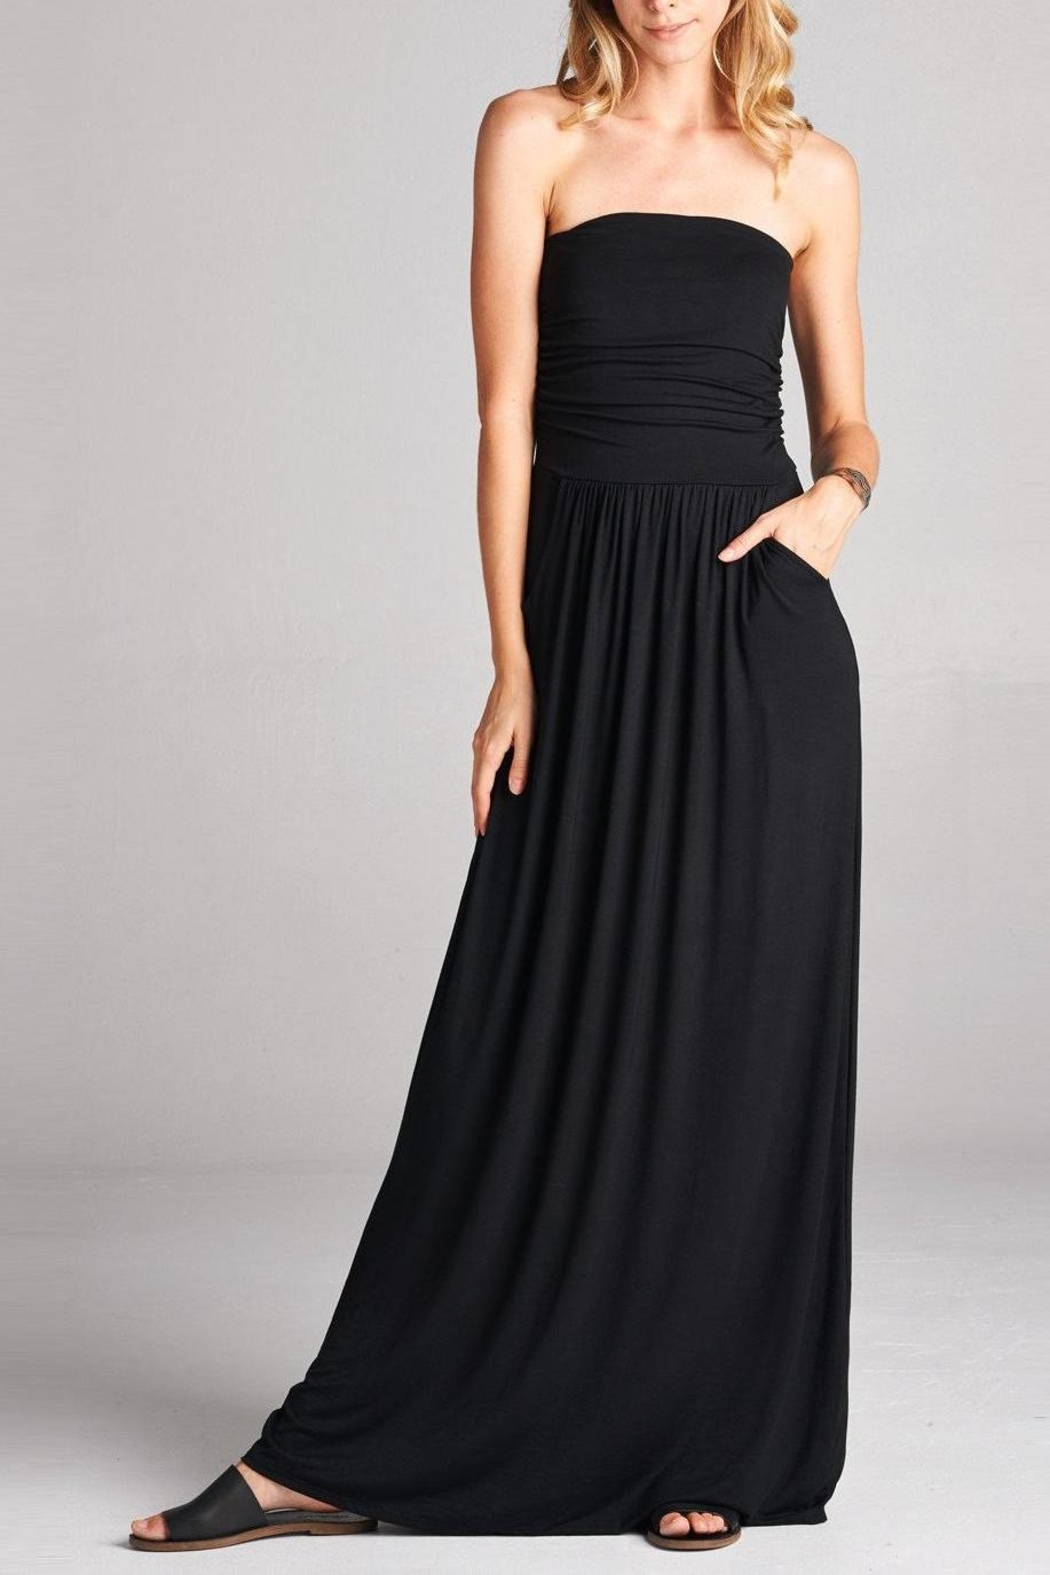 Love Kuza Strapless Dress - Main Image